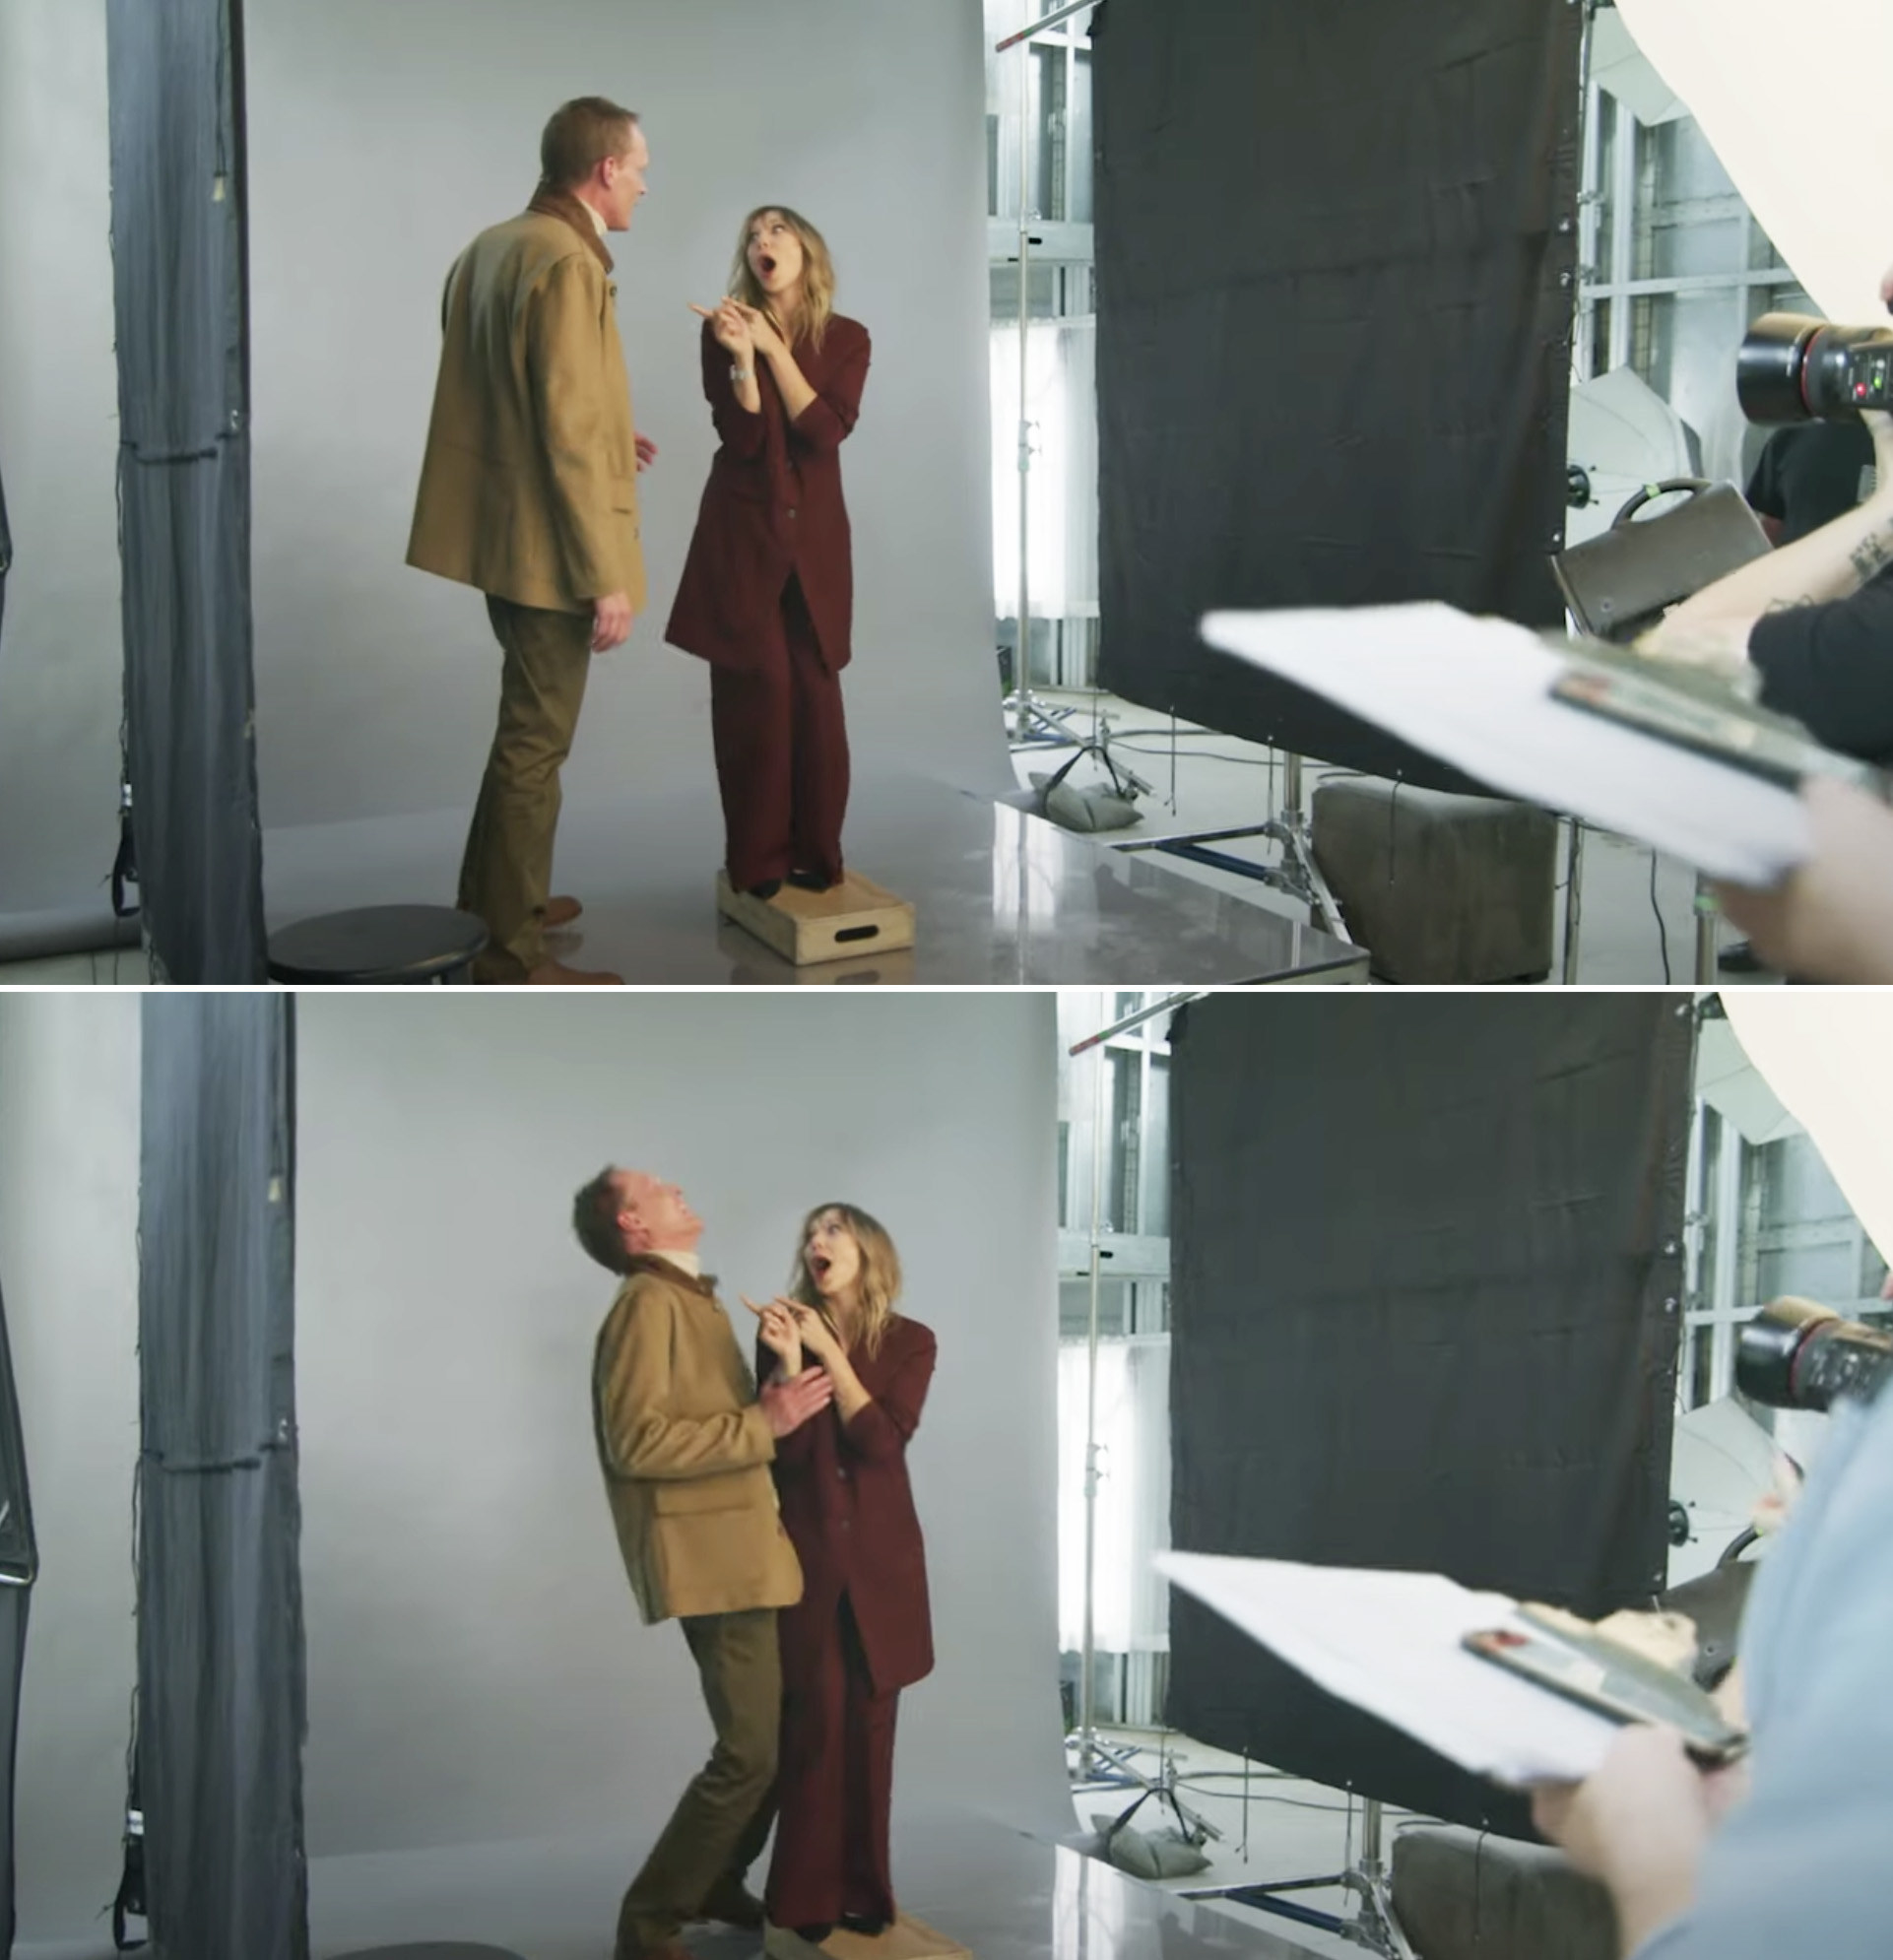 Lizzie pointing at Paul and making him laugh